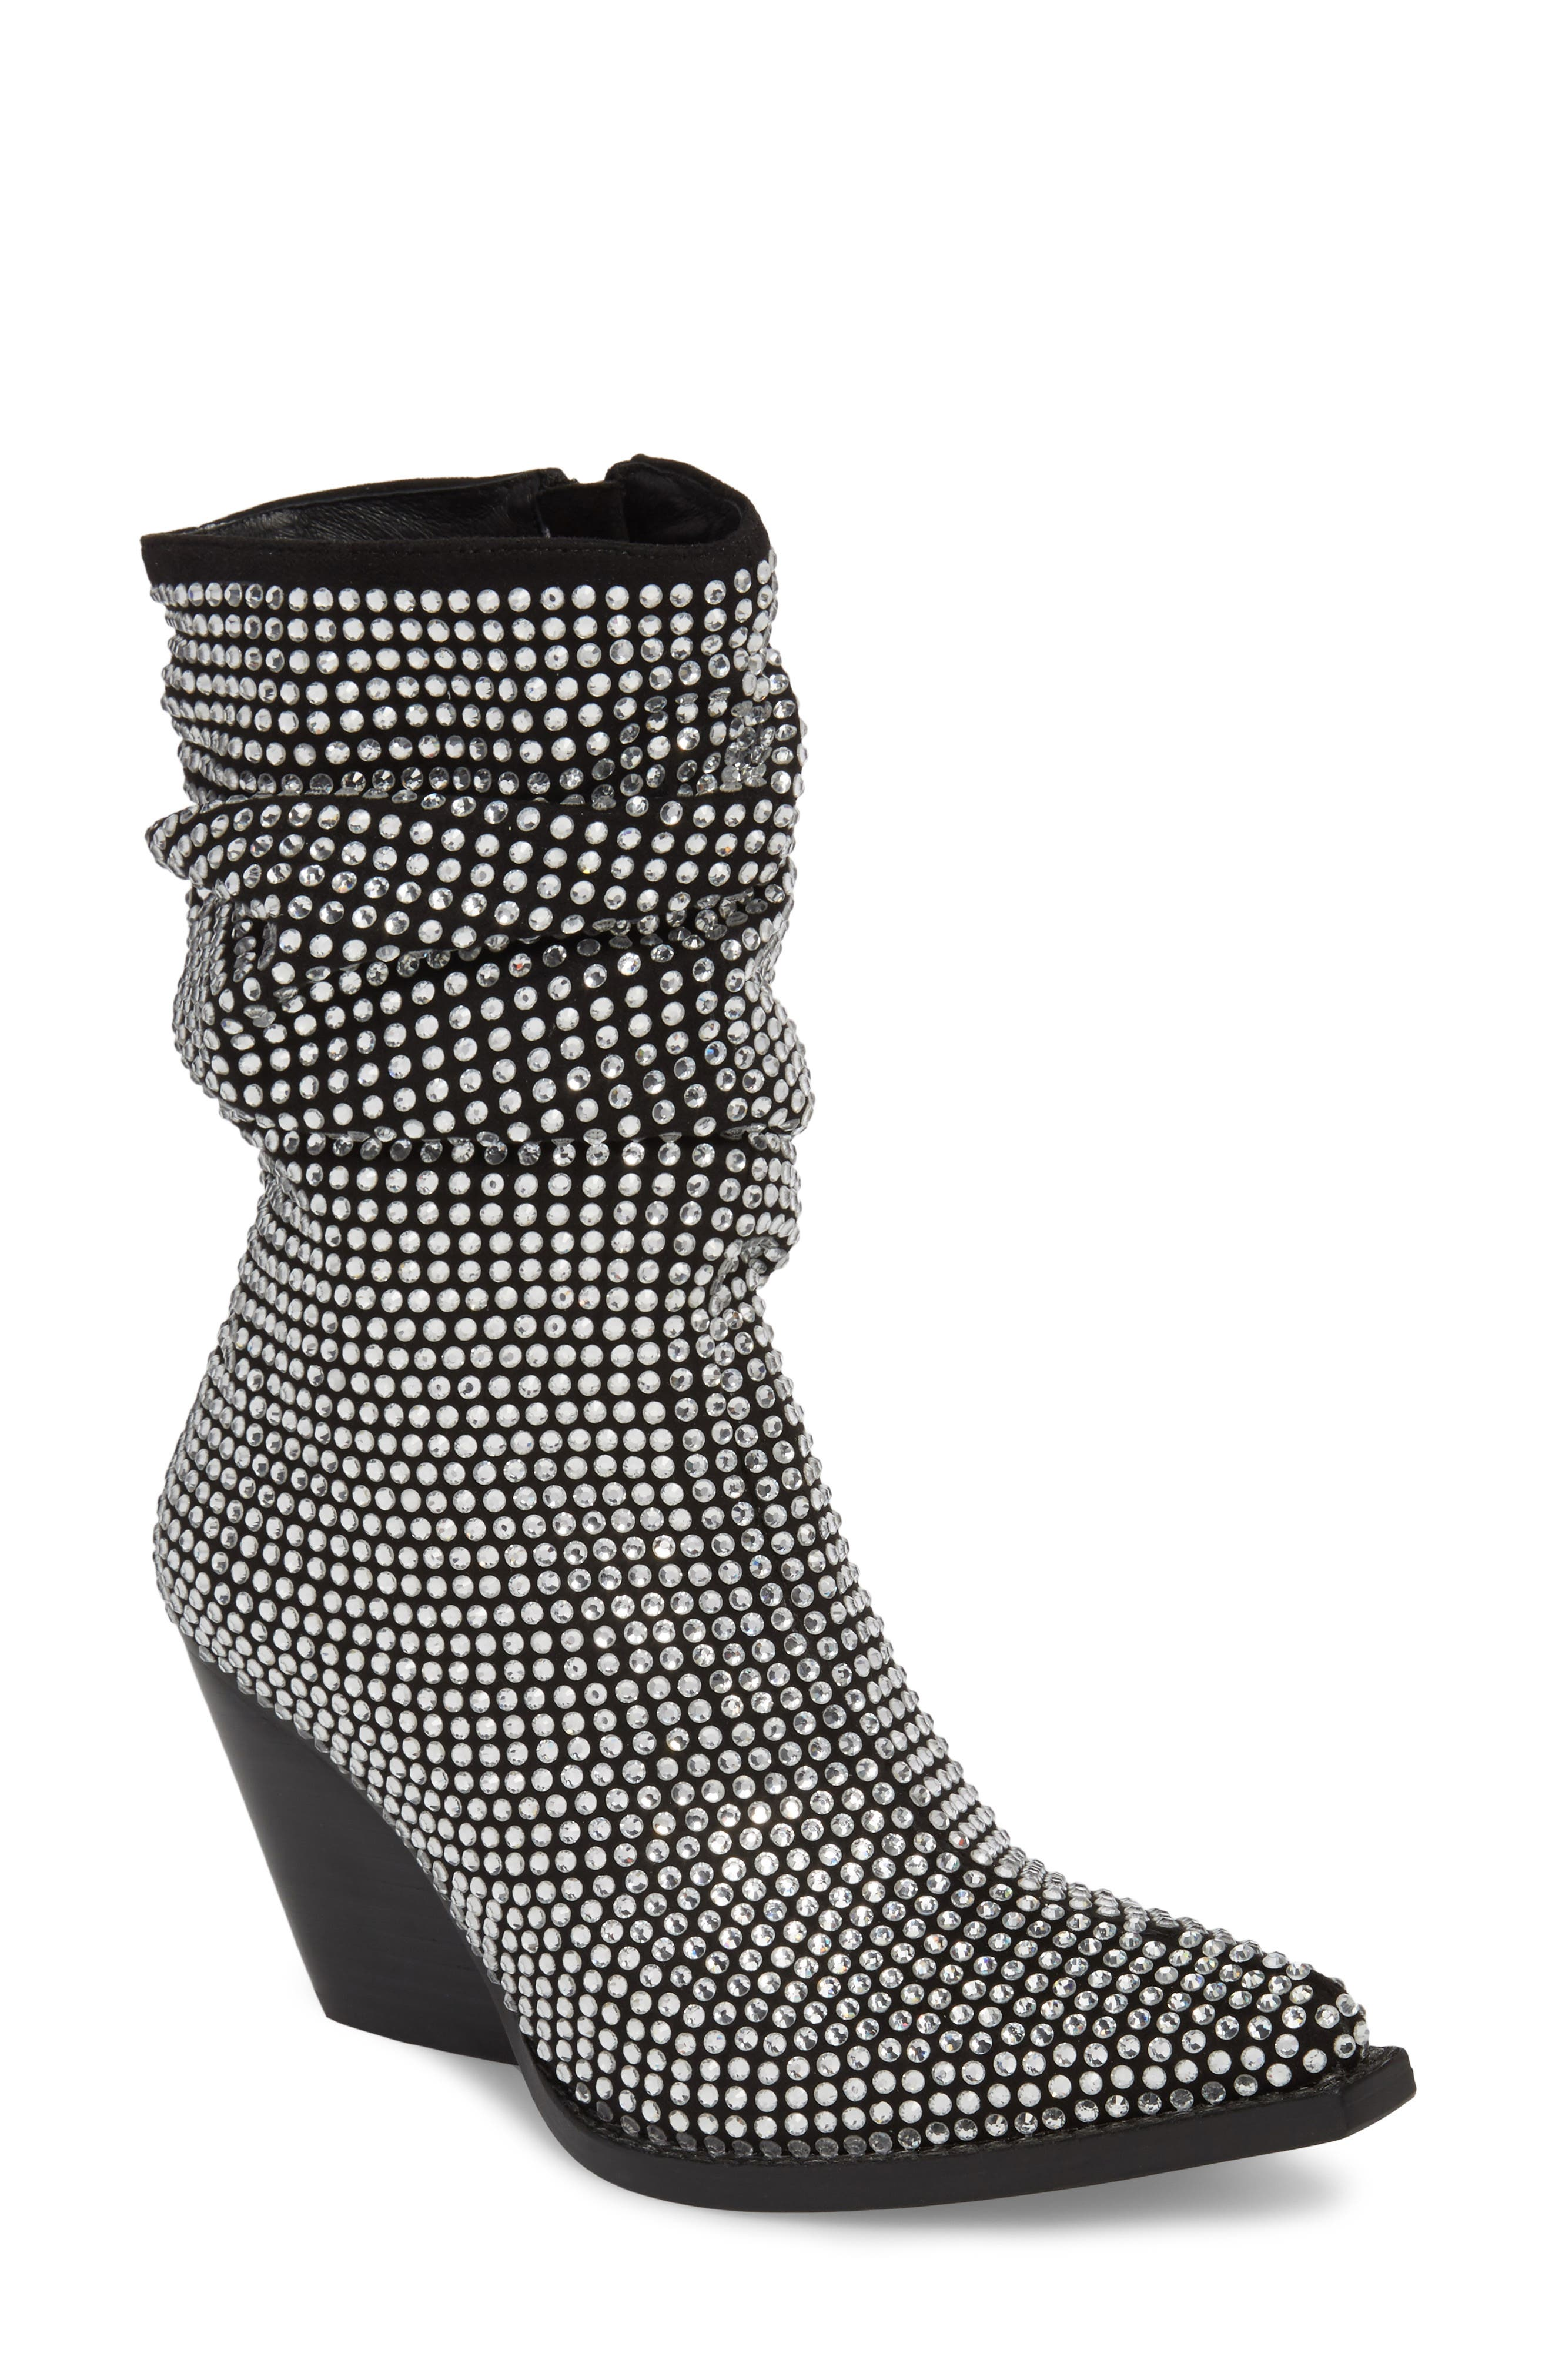 CONTROLL CRYSTAL STUDDED SLOUCH BOOT